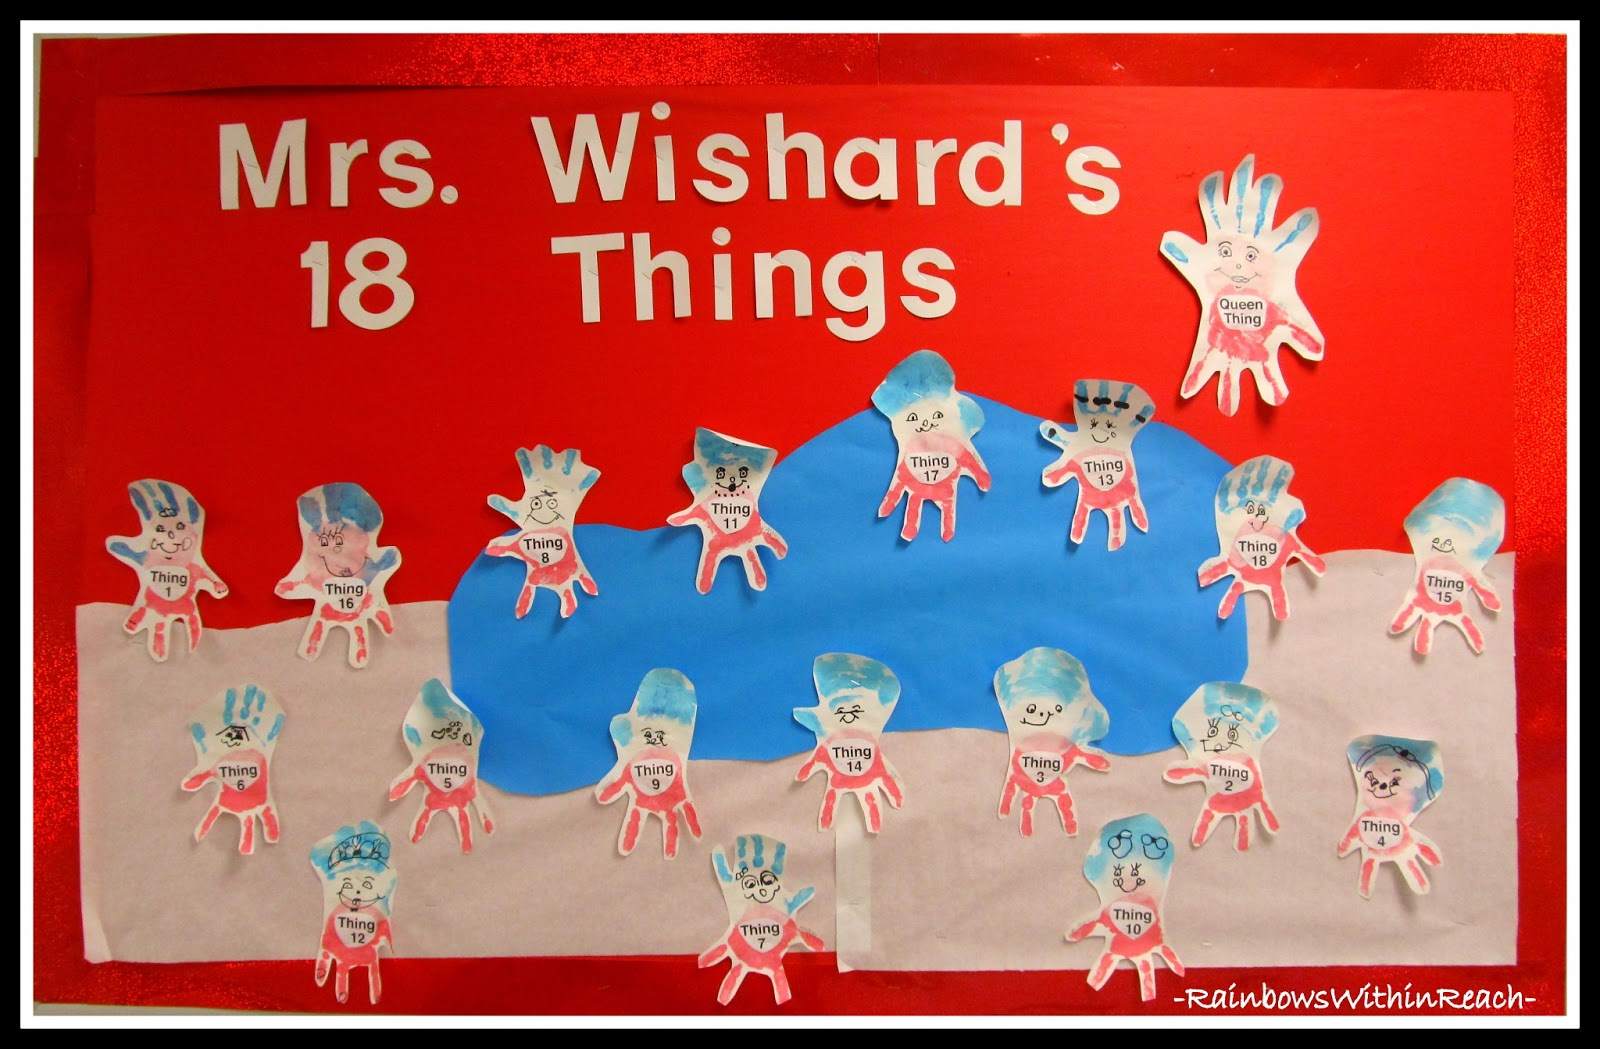 Lucky Mrs. Wishard to have 'only' 18 THINGS to teach.